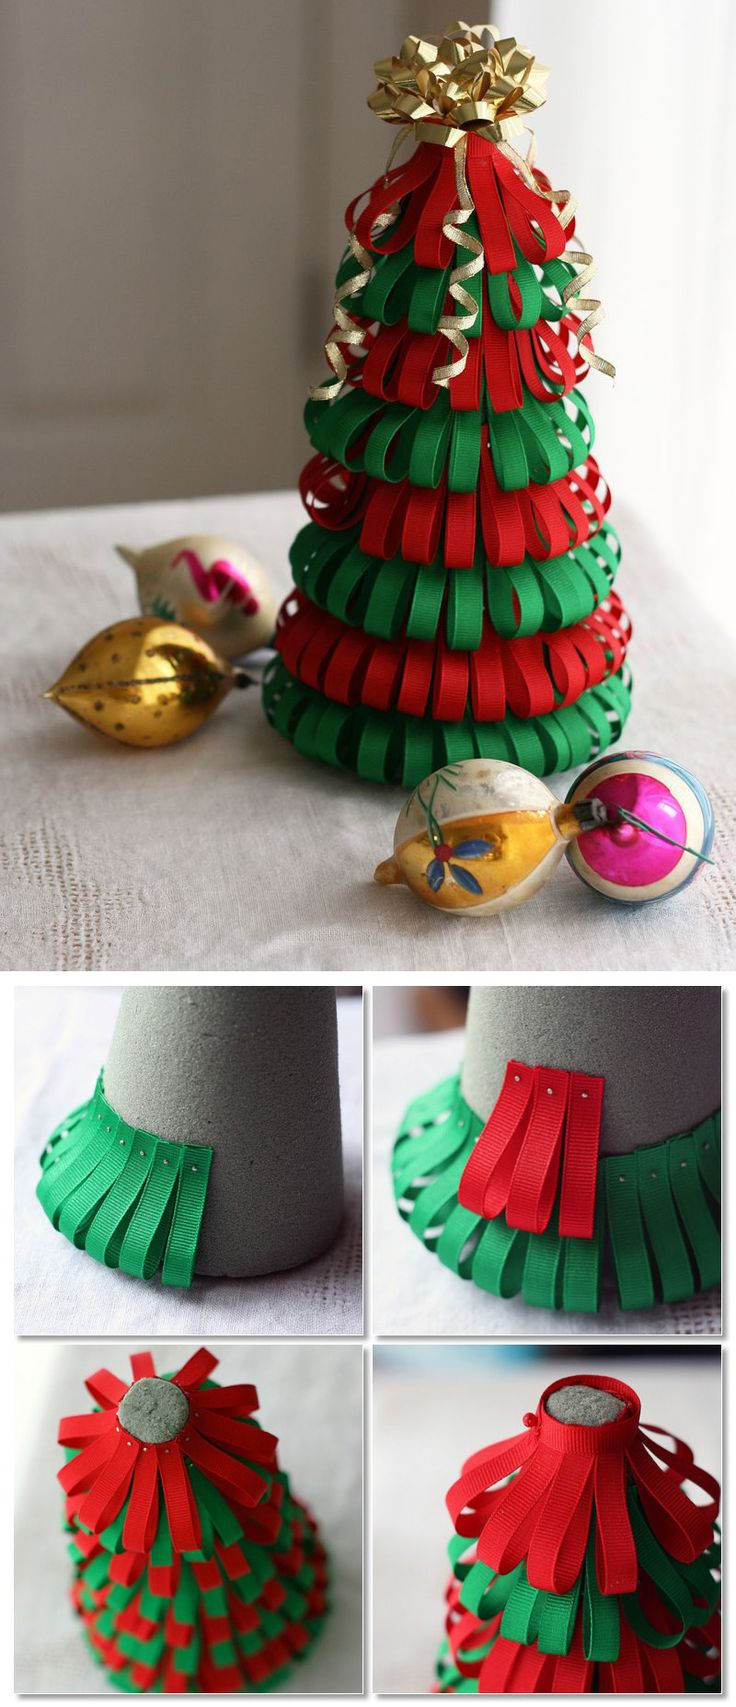 Christmas tree 2014 decorating trends - Diy Ribbon Christmas Tree Would Be Cute With Glitter Ribbon Too Holiday Decoration